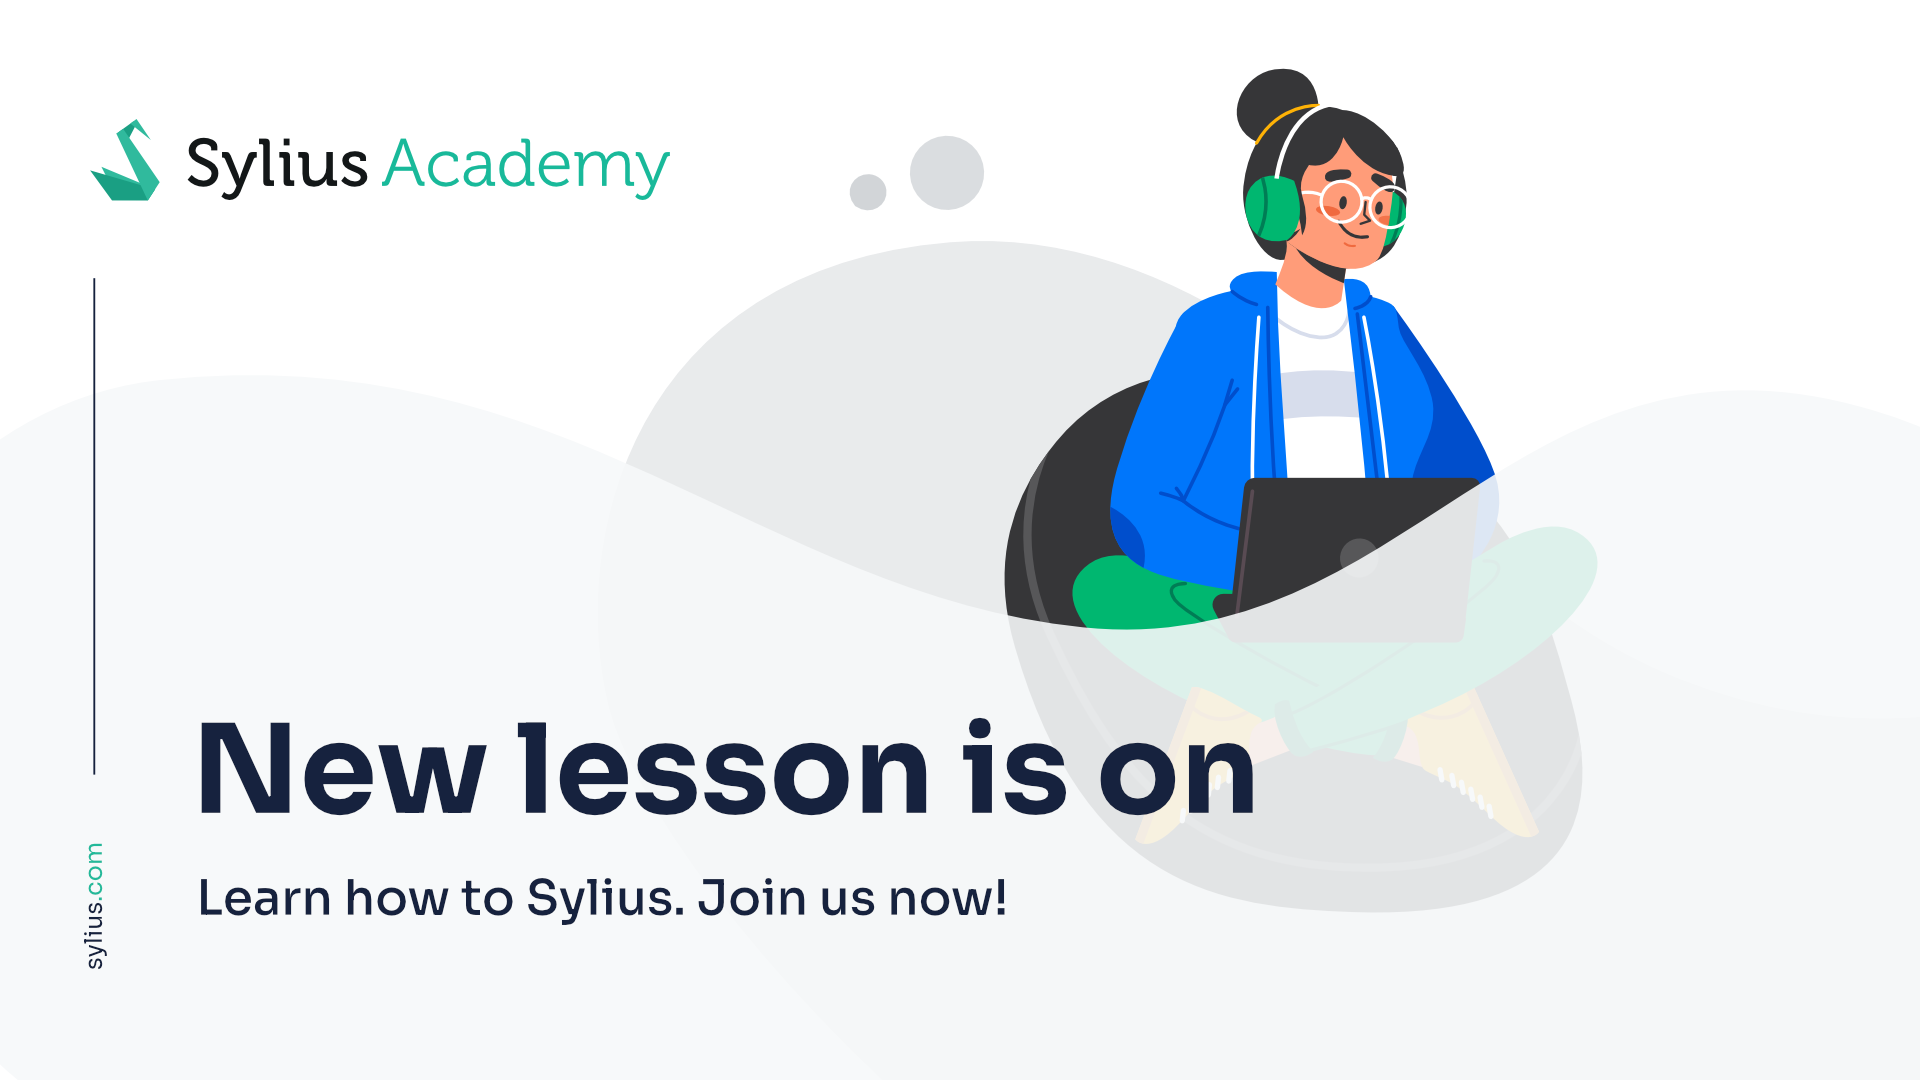 Sylius Academy Update: New lesson is on!